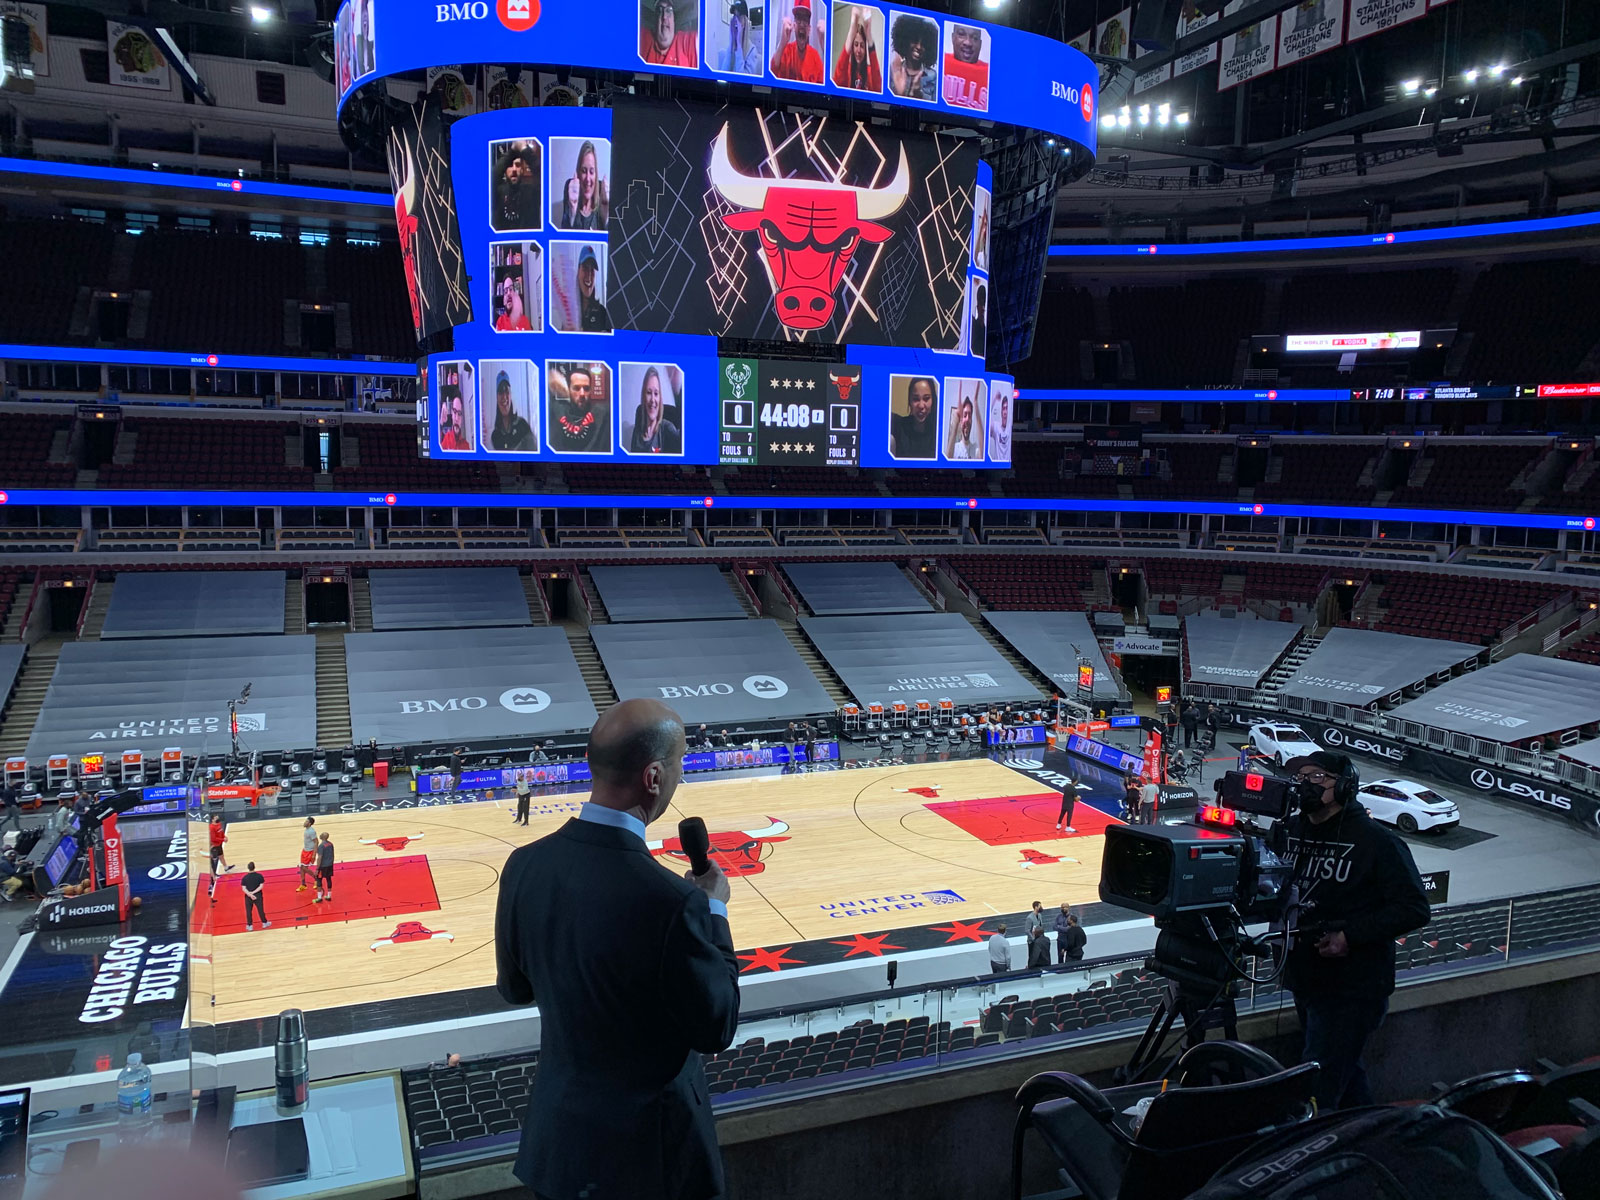 Chuck announcing with the empty united center as a backdrop